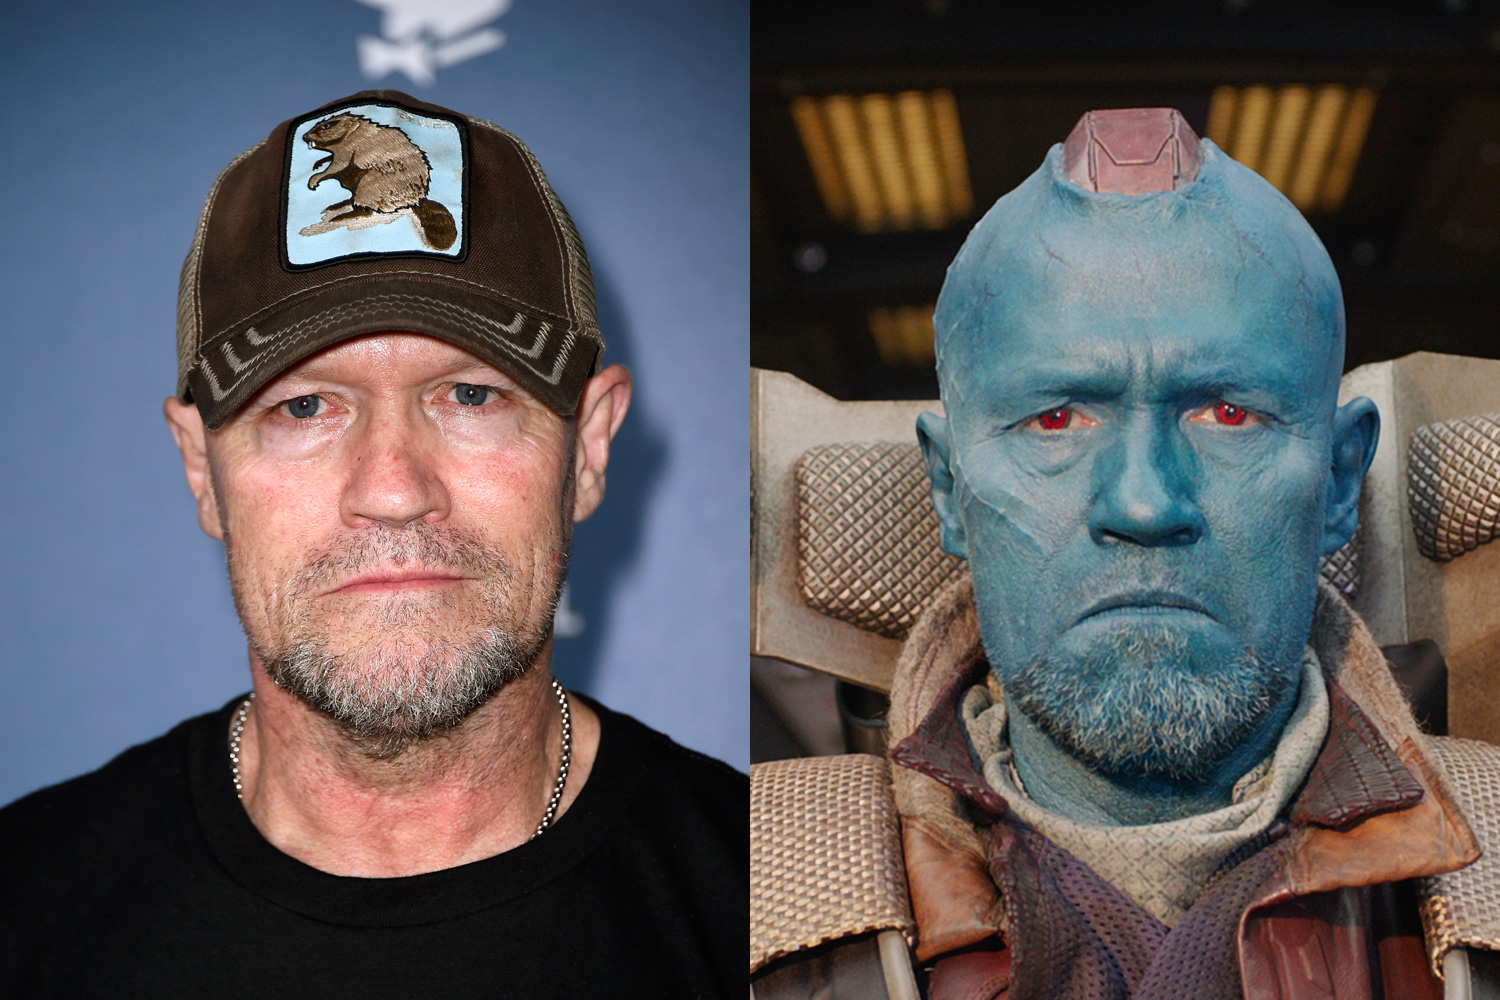 Michael Rooker plays the blue-skinned bandit Yondu, who has a  mohawk  that lights up from front to back.